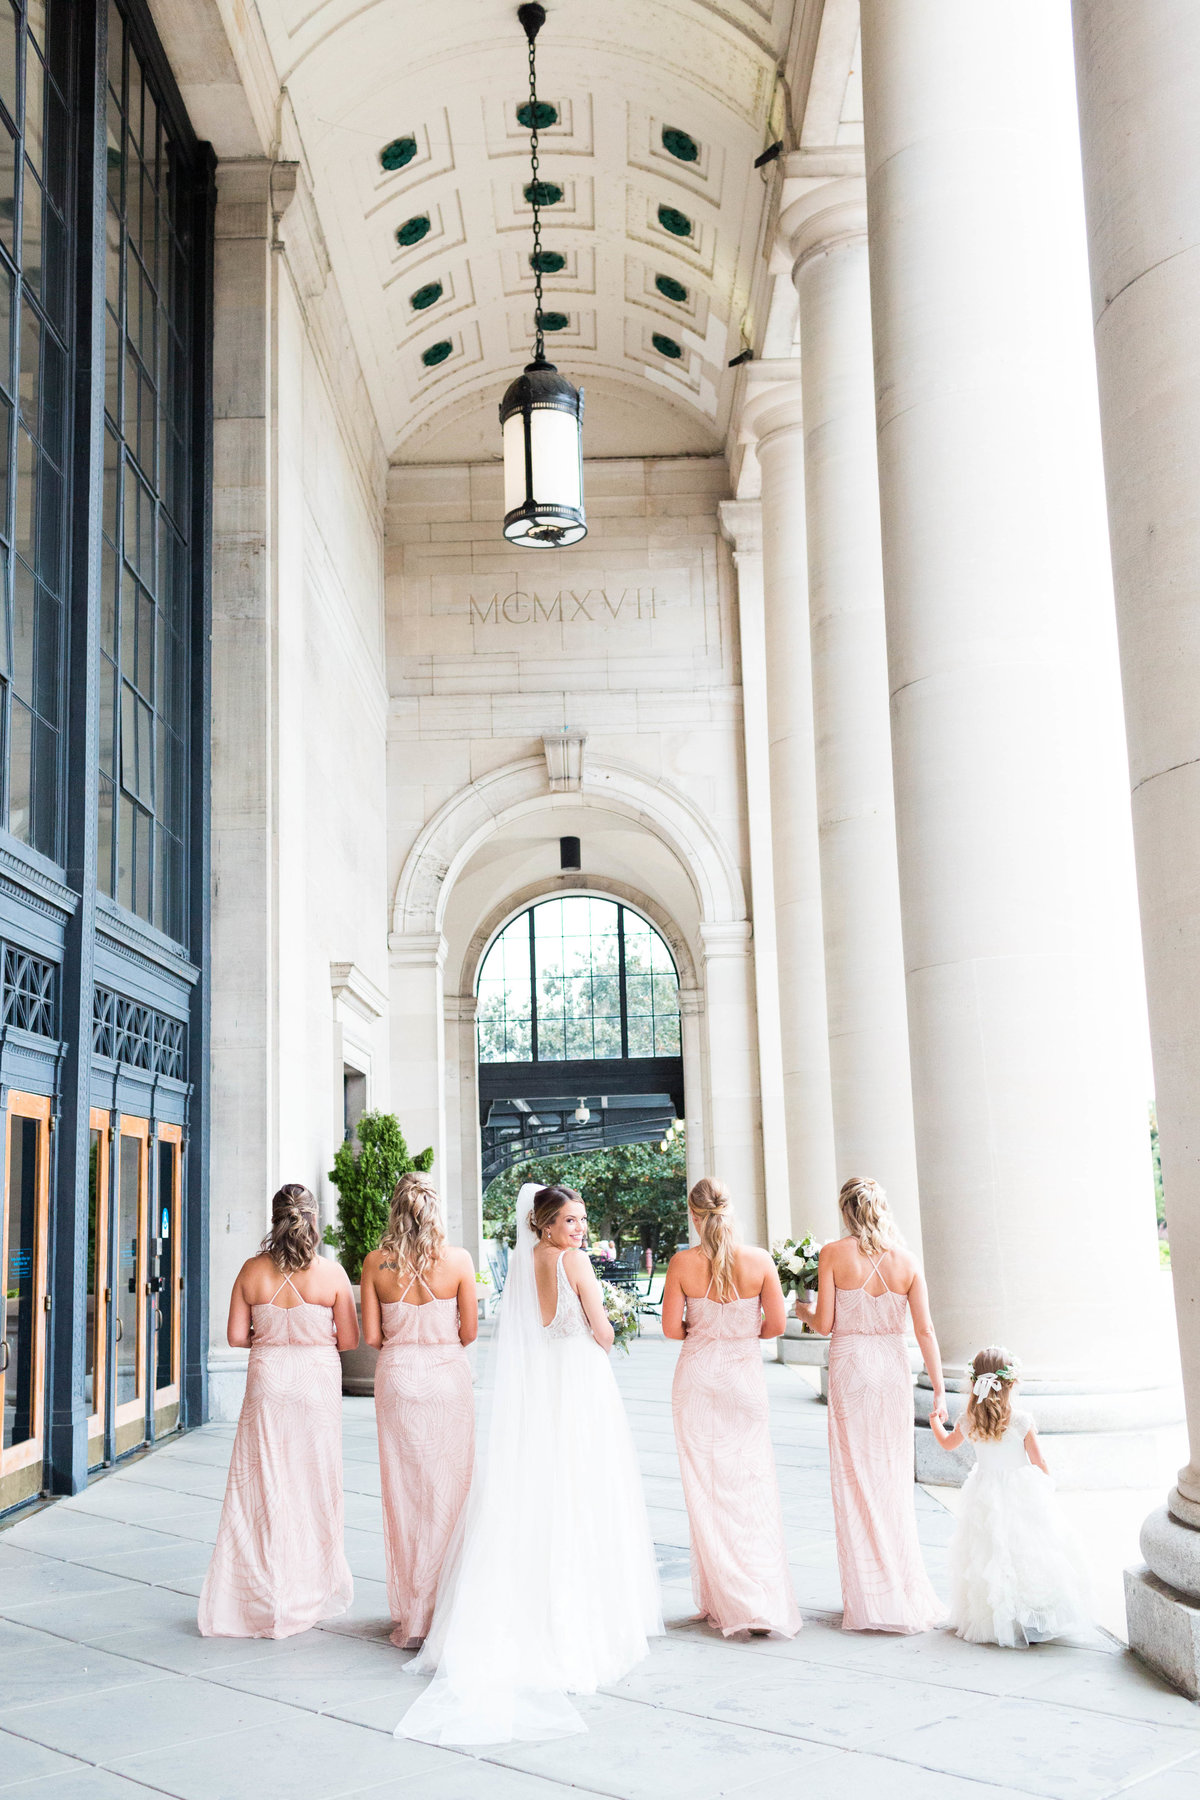 Richmond Science Museum of Virginia wedding